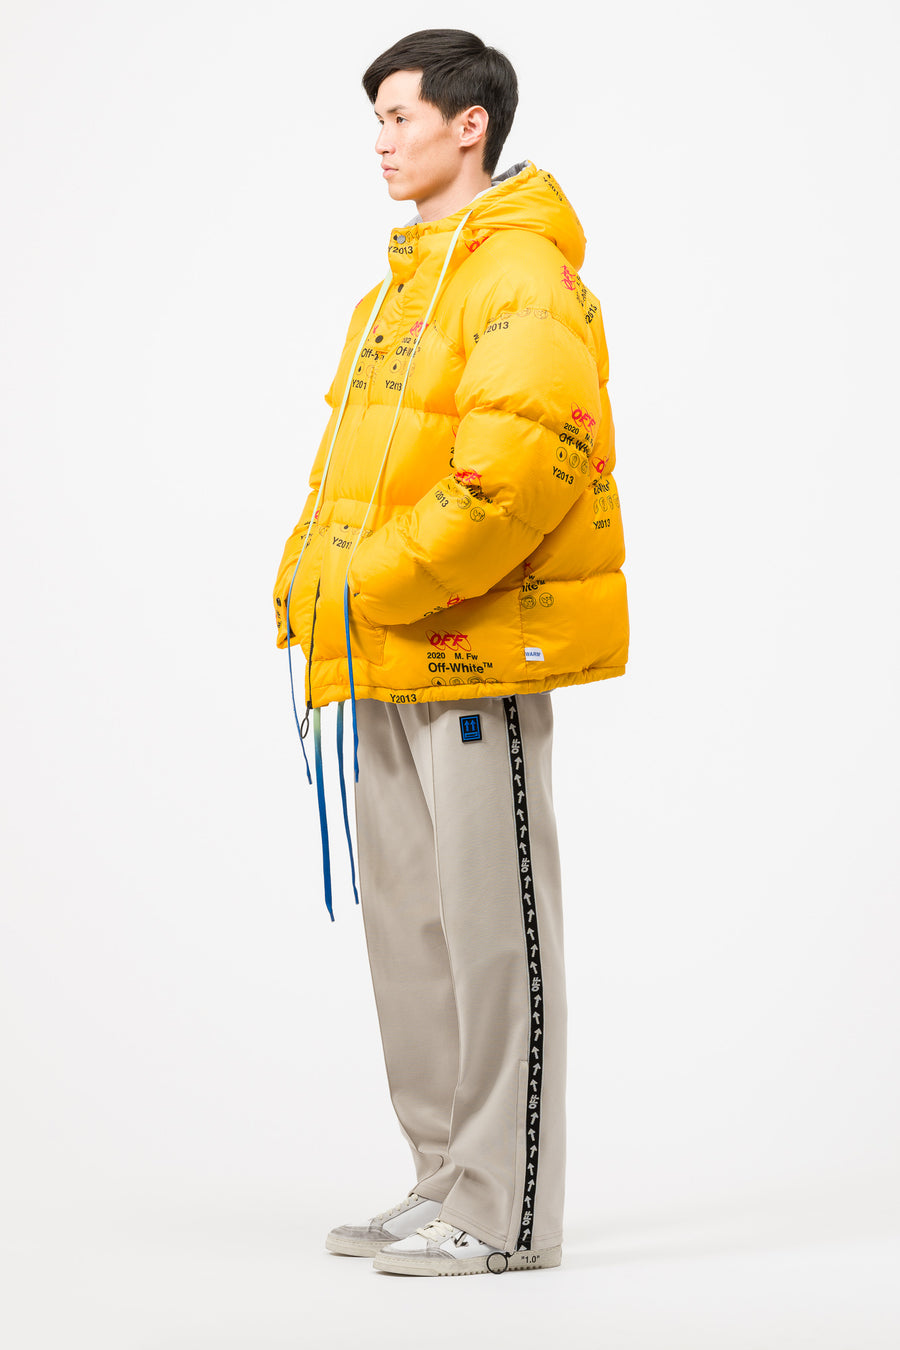 Off-White Industrial Zipped Puffer in Yellow - Notre